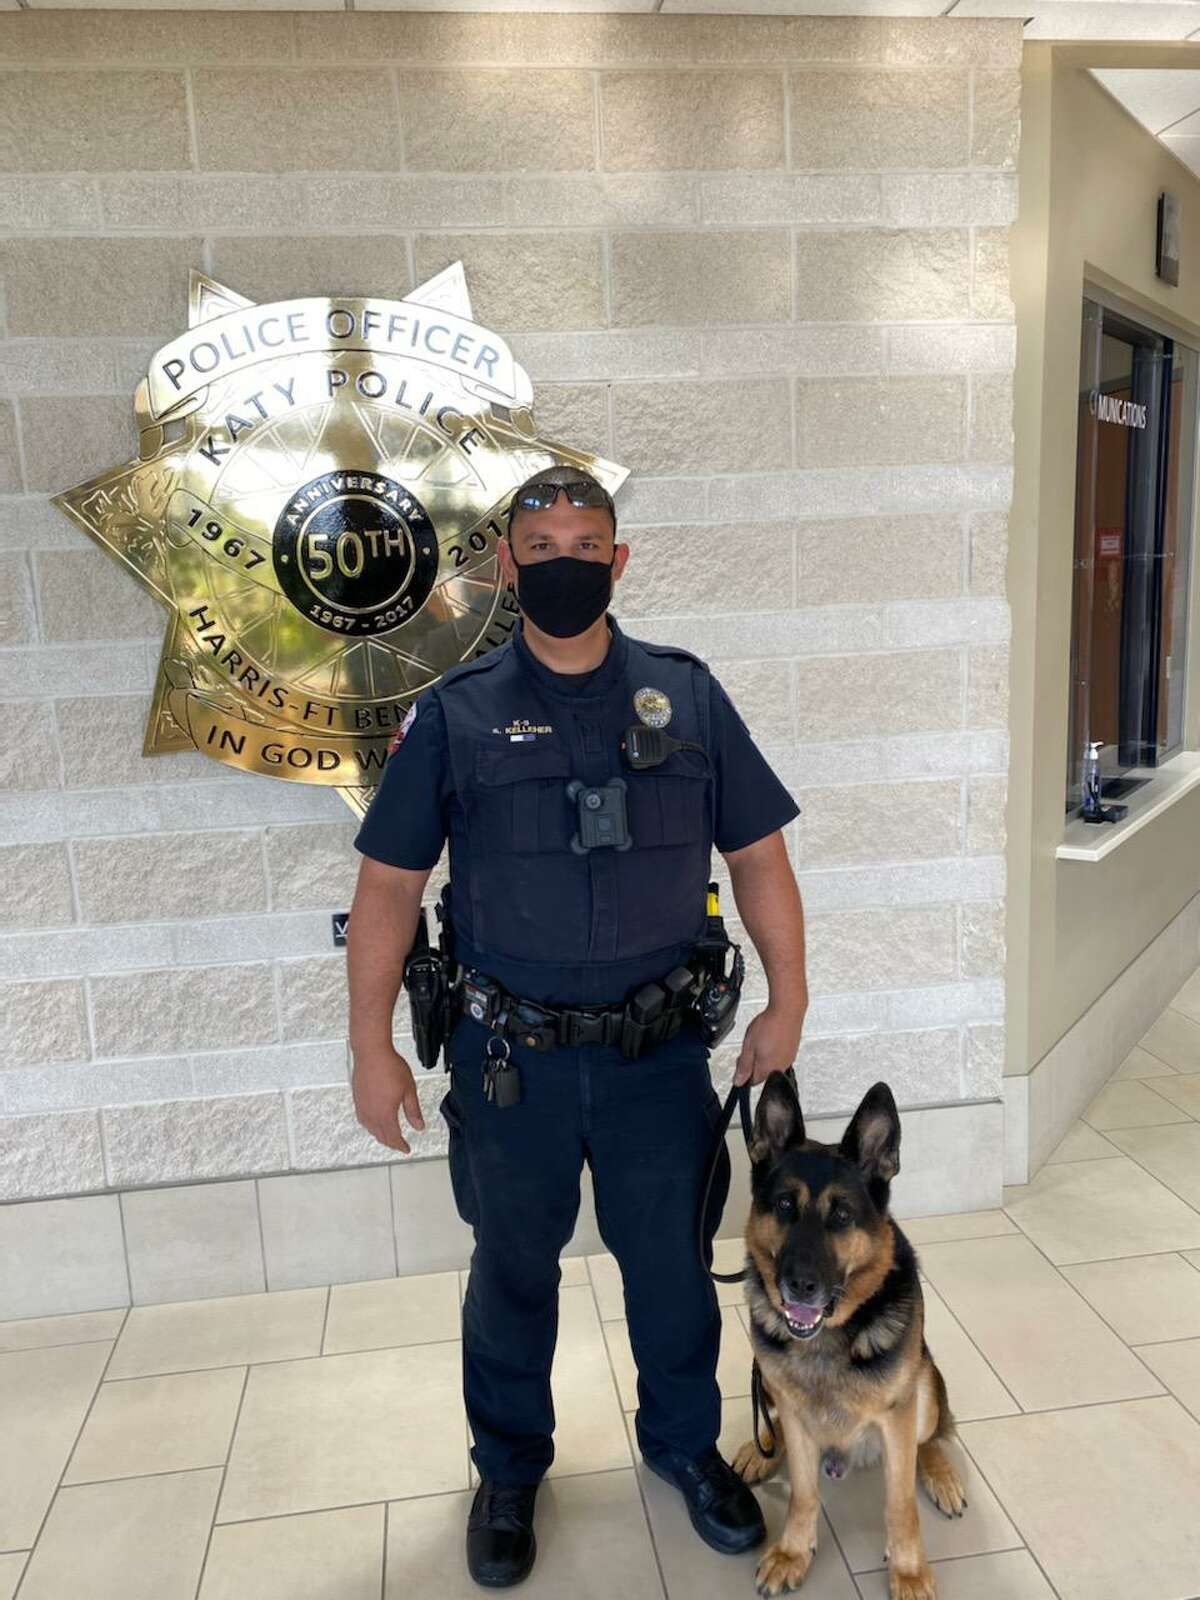 Steven Kelleher from the Katy Police Department was among the first responders honored for their life saving efforts on Sept. 14, 2020.